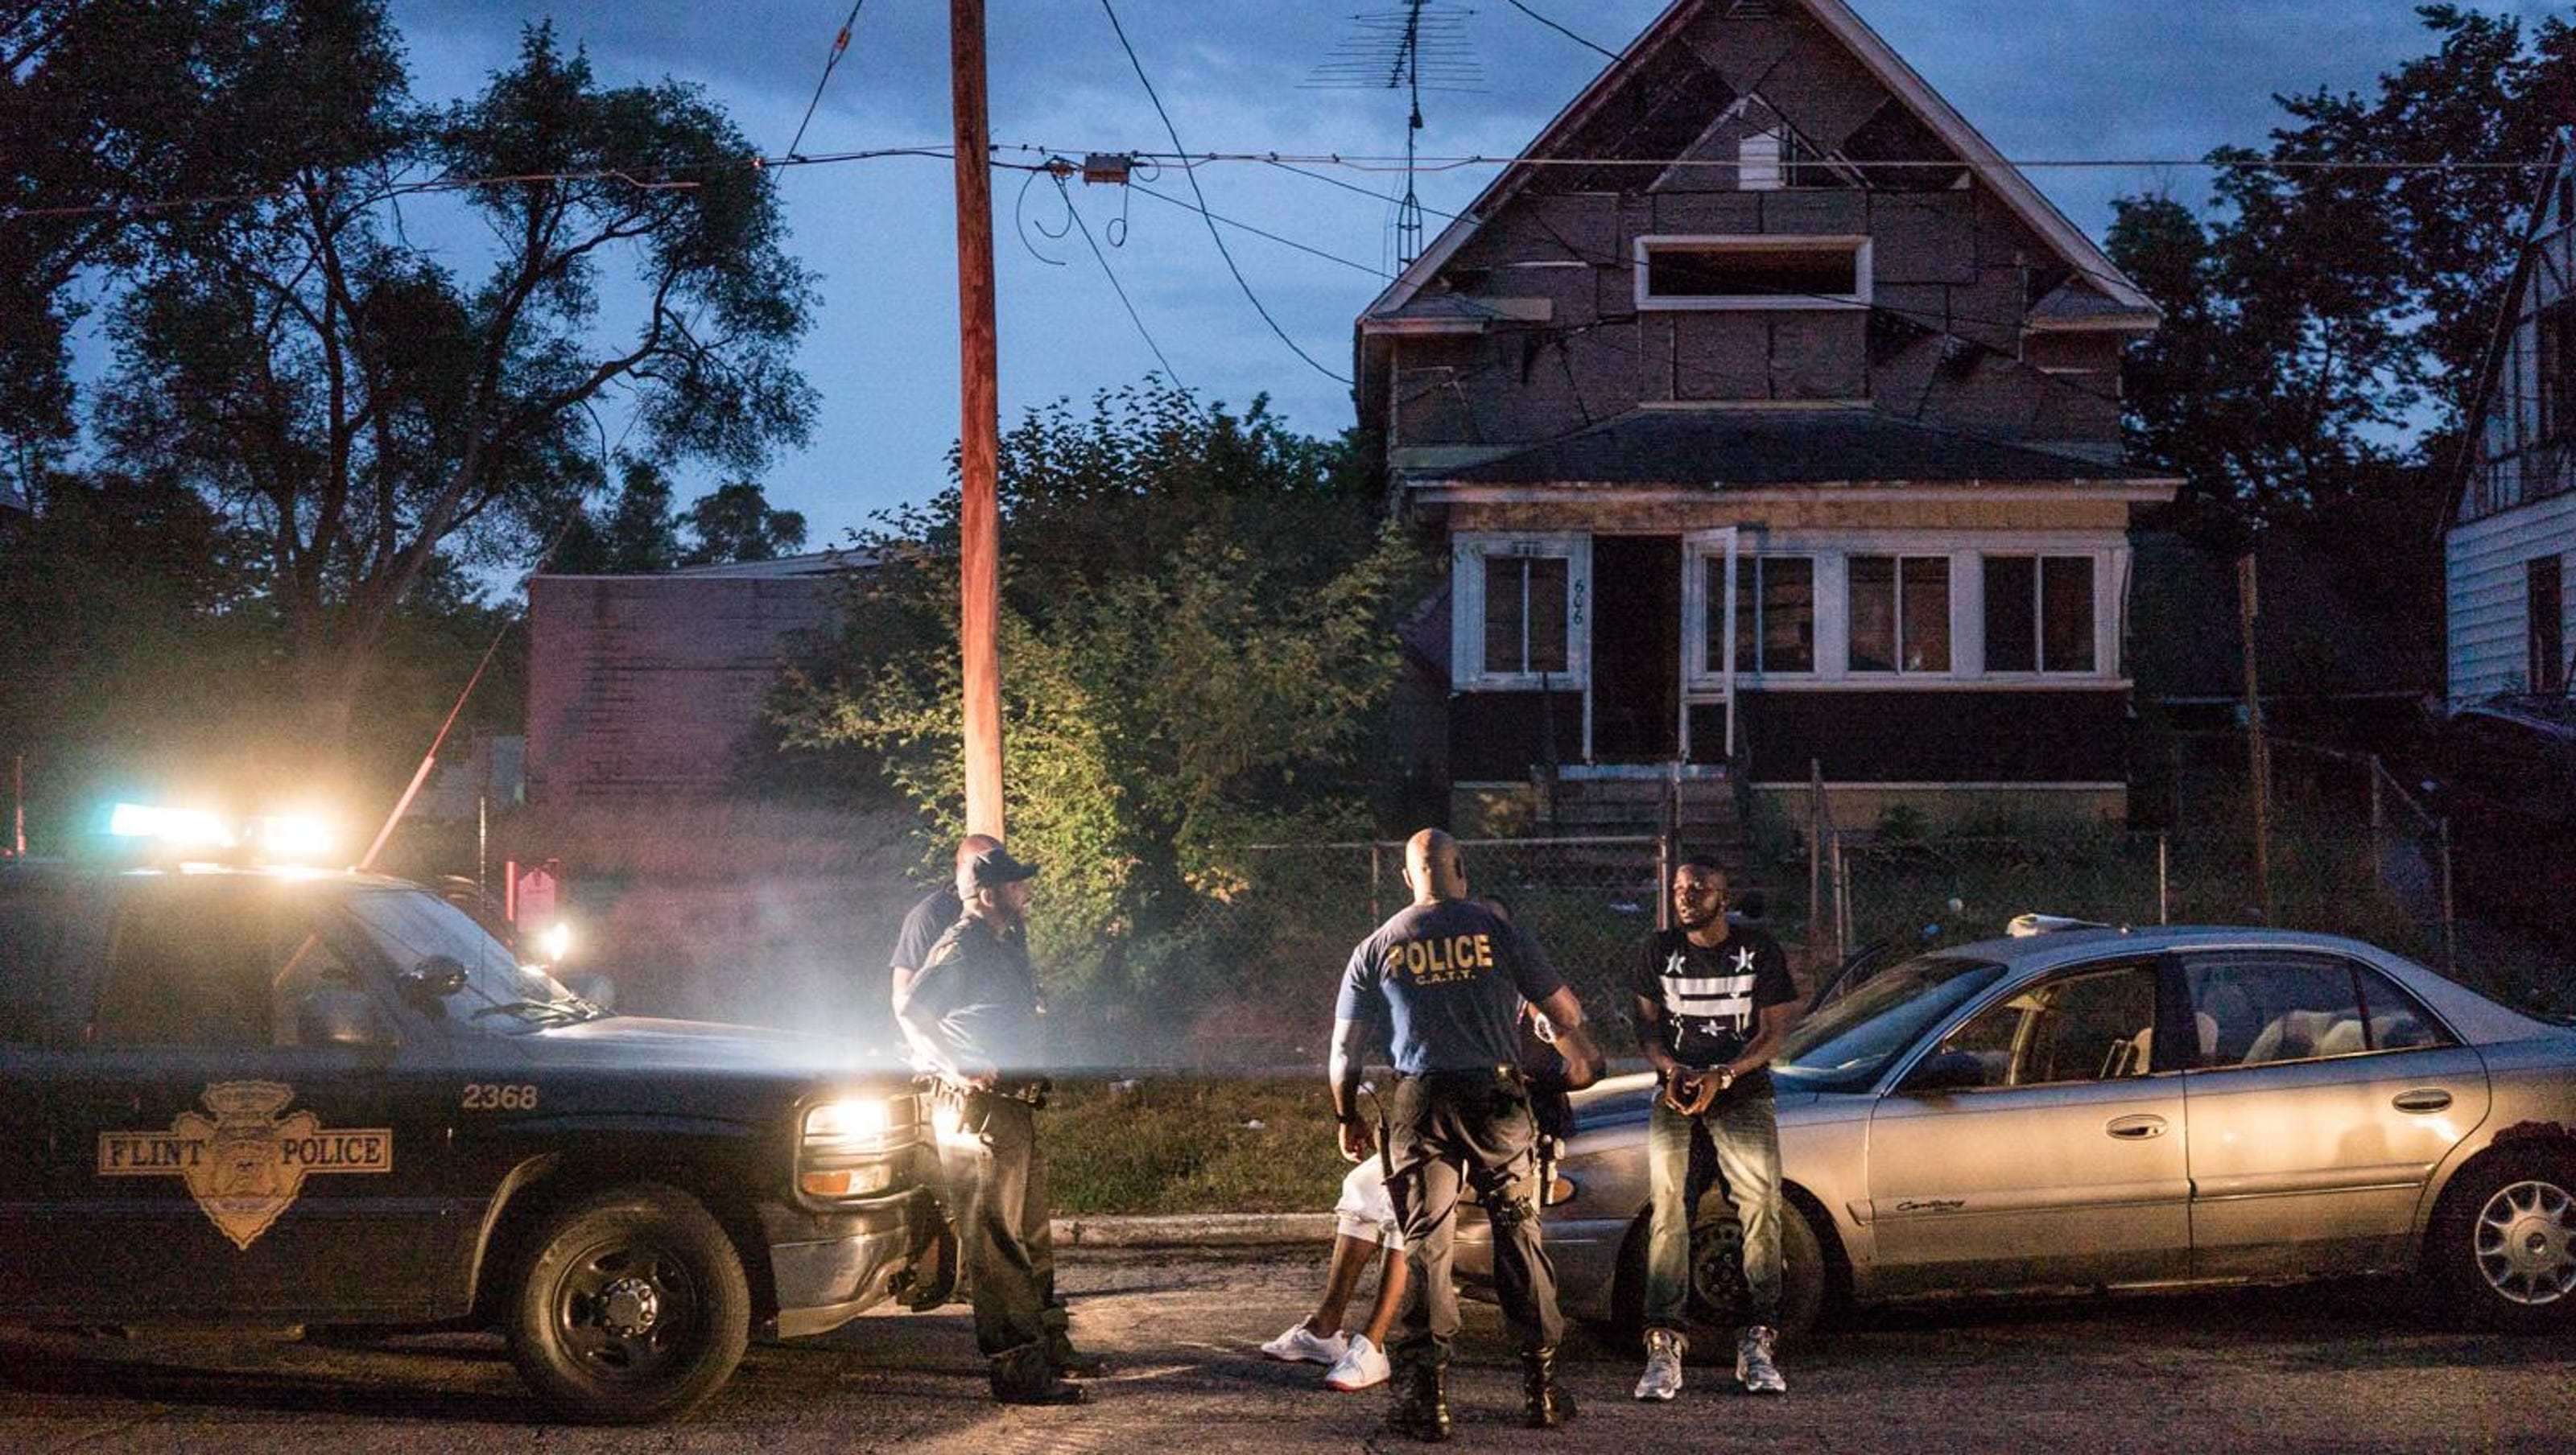 Review: 'Flint Town' takes tough look at city in crisis